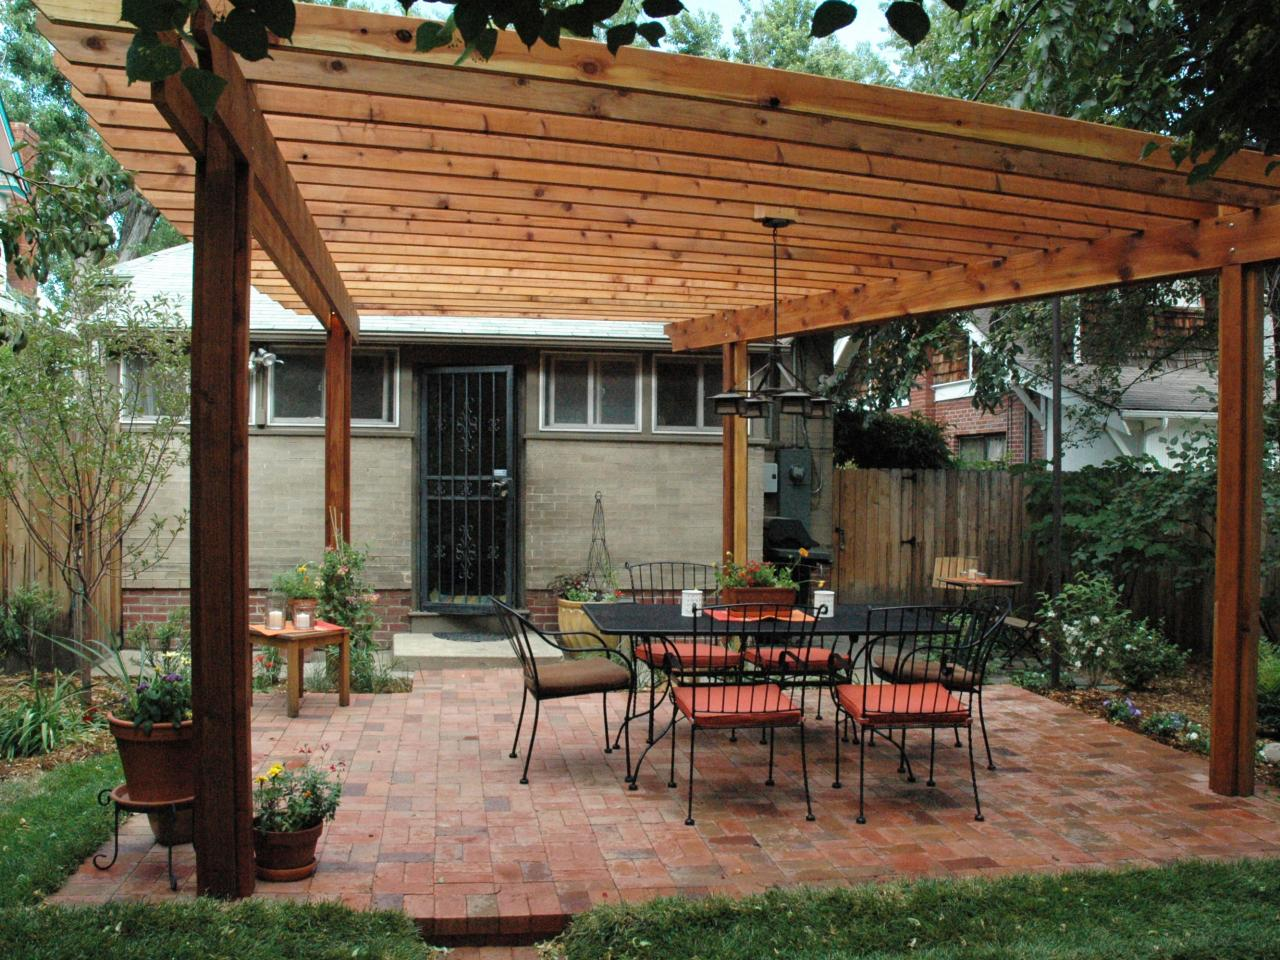 DIY-2393091_dseq113_3_final11 - How To Build A Wood Pergola HGTV